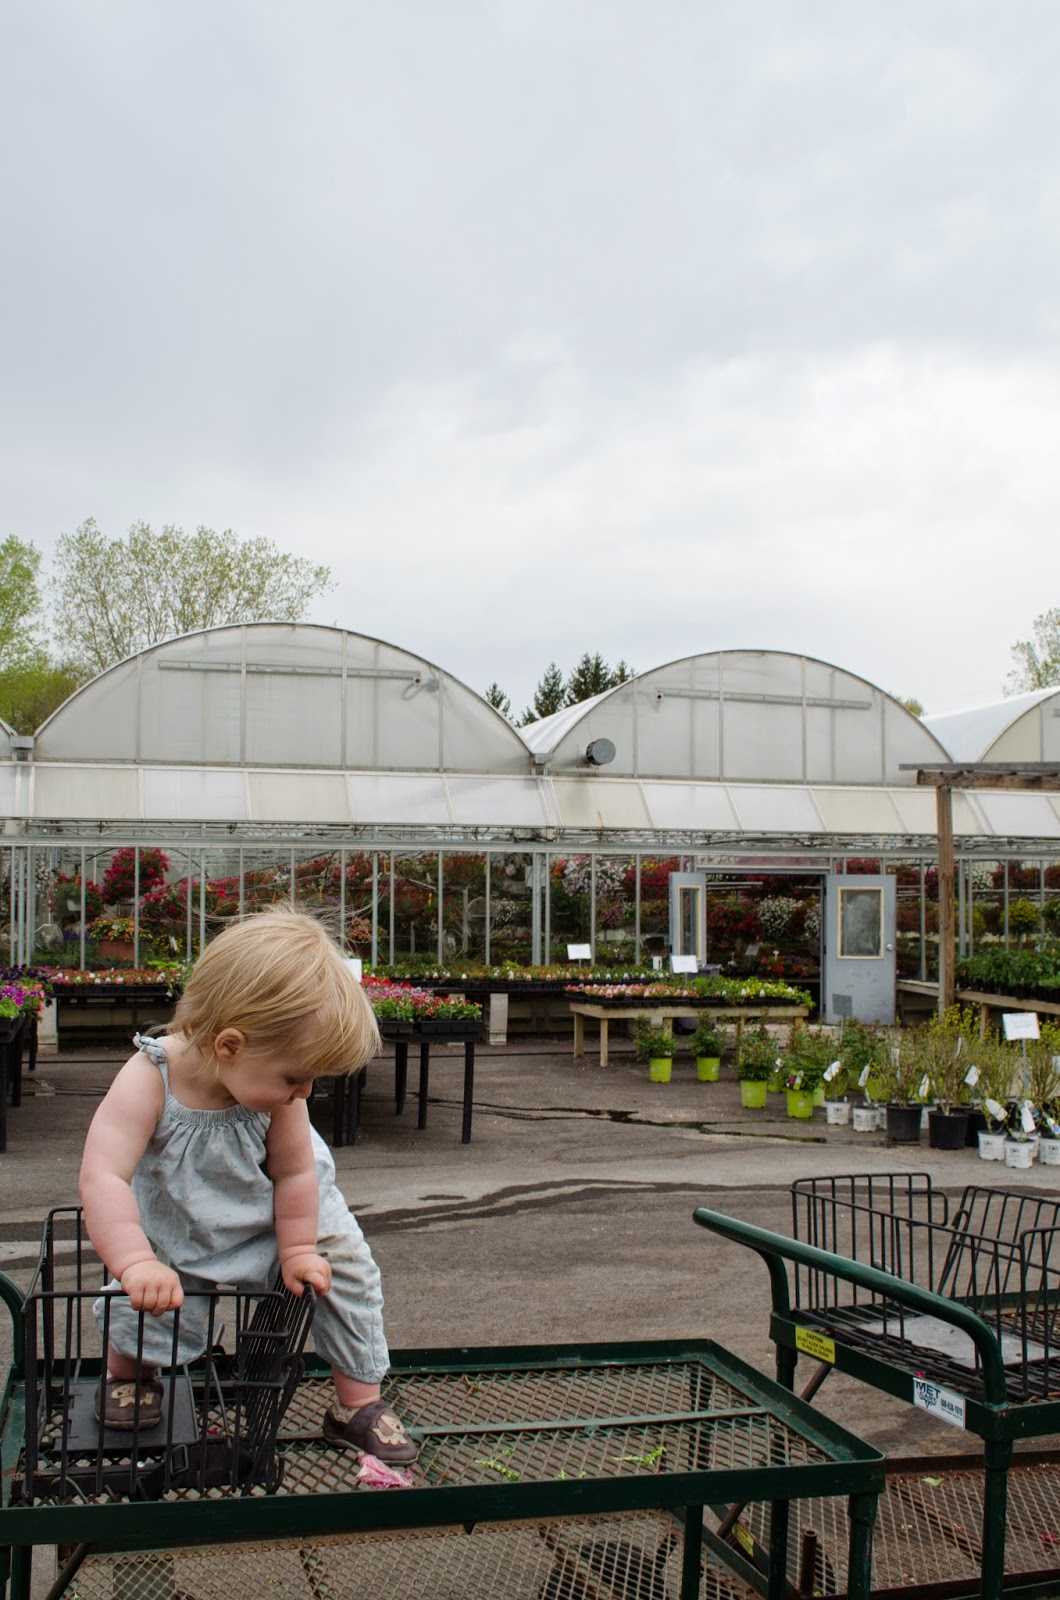 groth's country gardens | cedarburg, wi